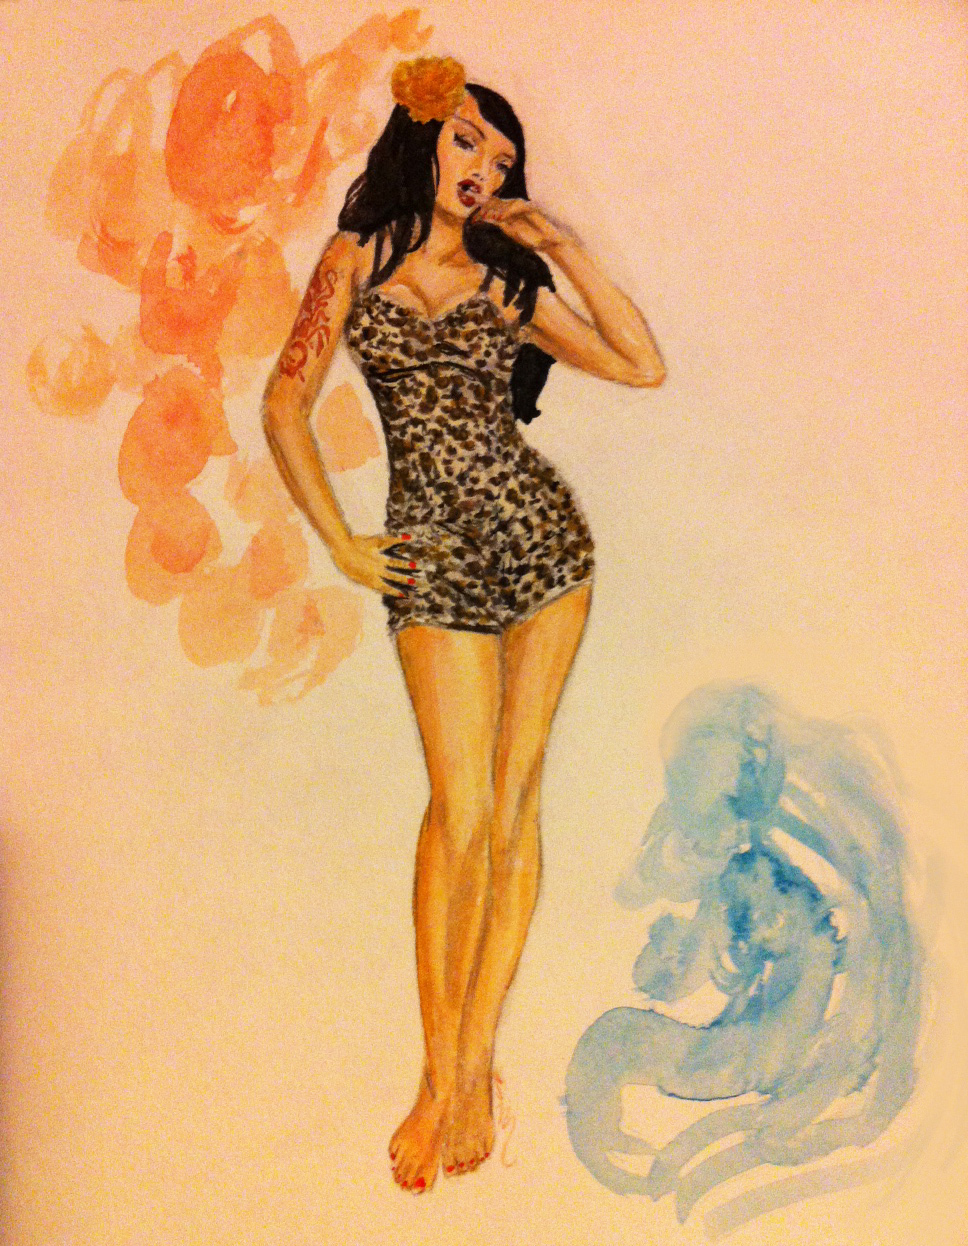 Pinup Girl Clothing Leopard SwimSuit as Modeled by Masuimi Max